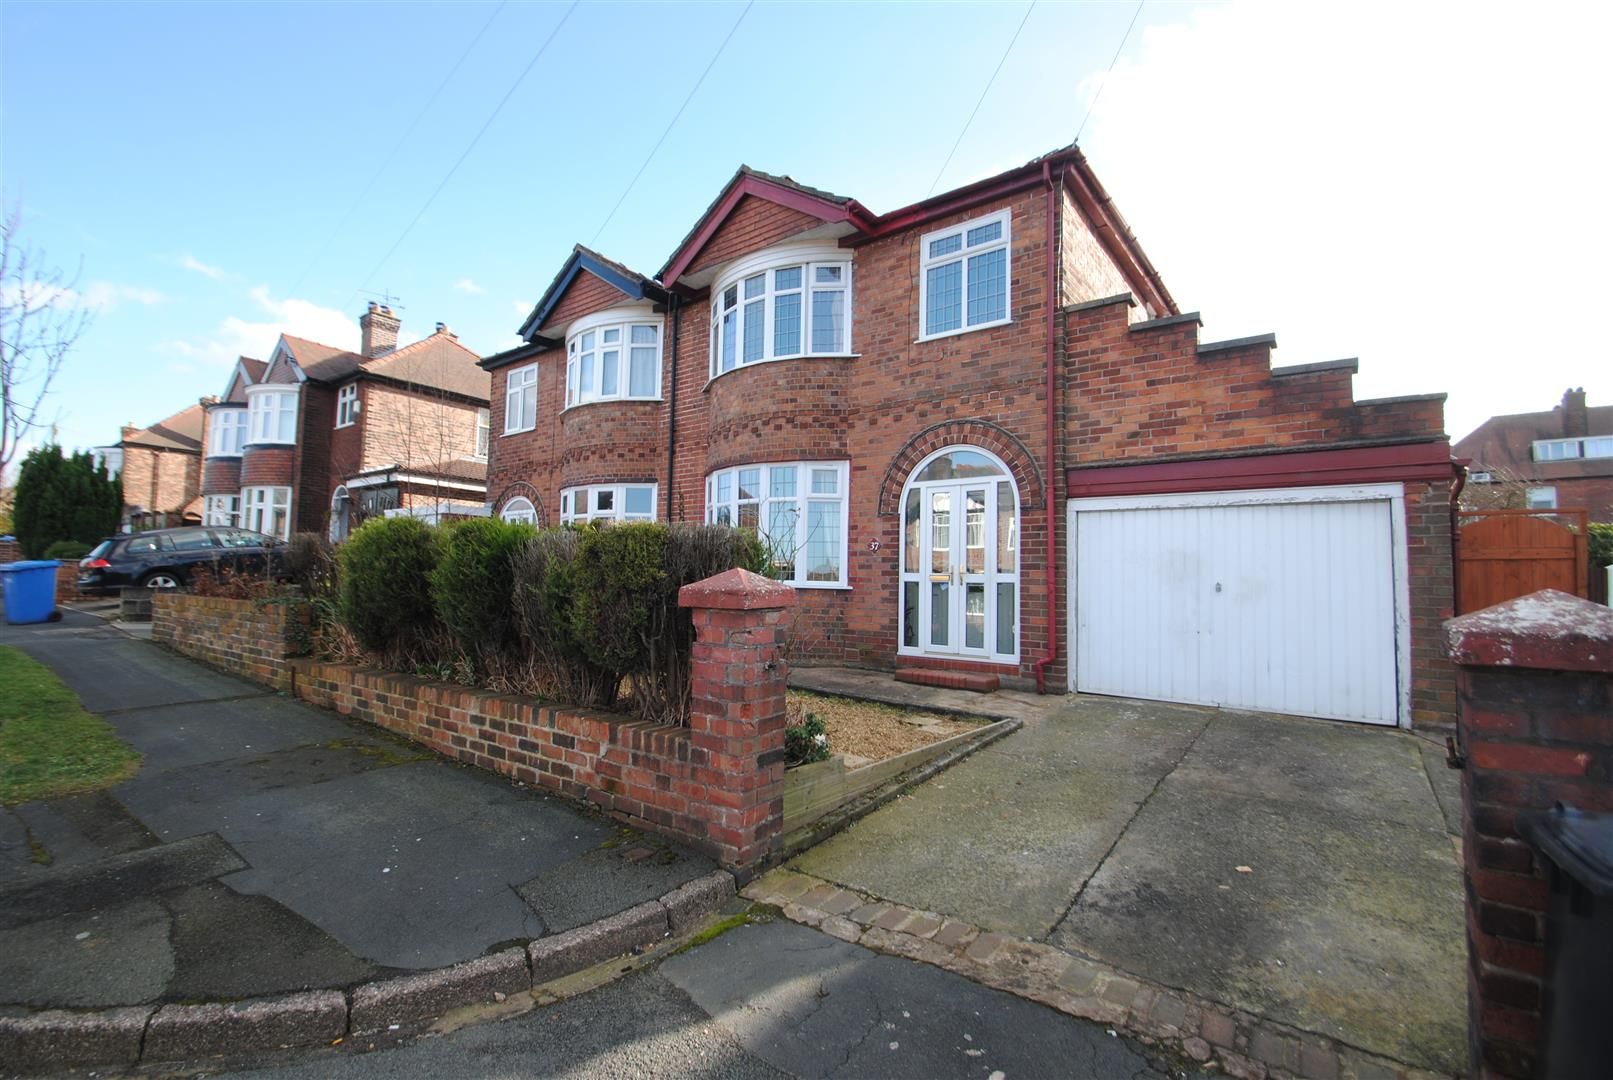 3 Bedrooms Semi Detached House for sale in Stetchworth Road, WALTON, Warrington, WA4